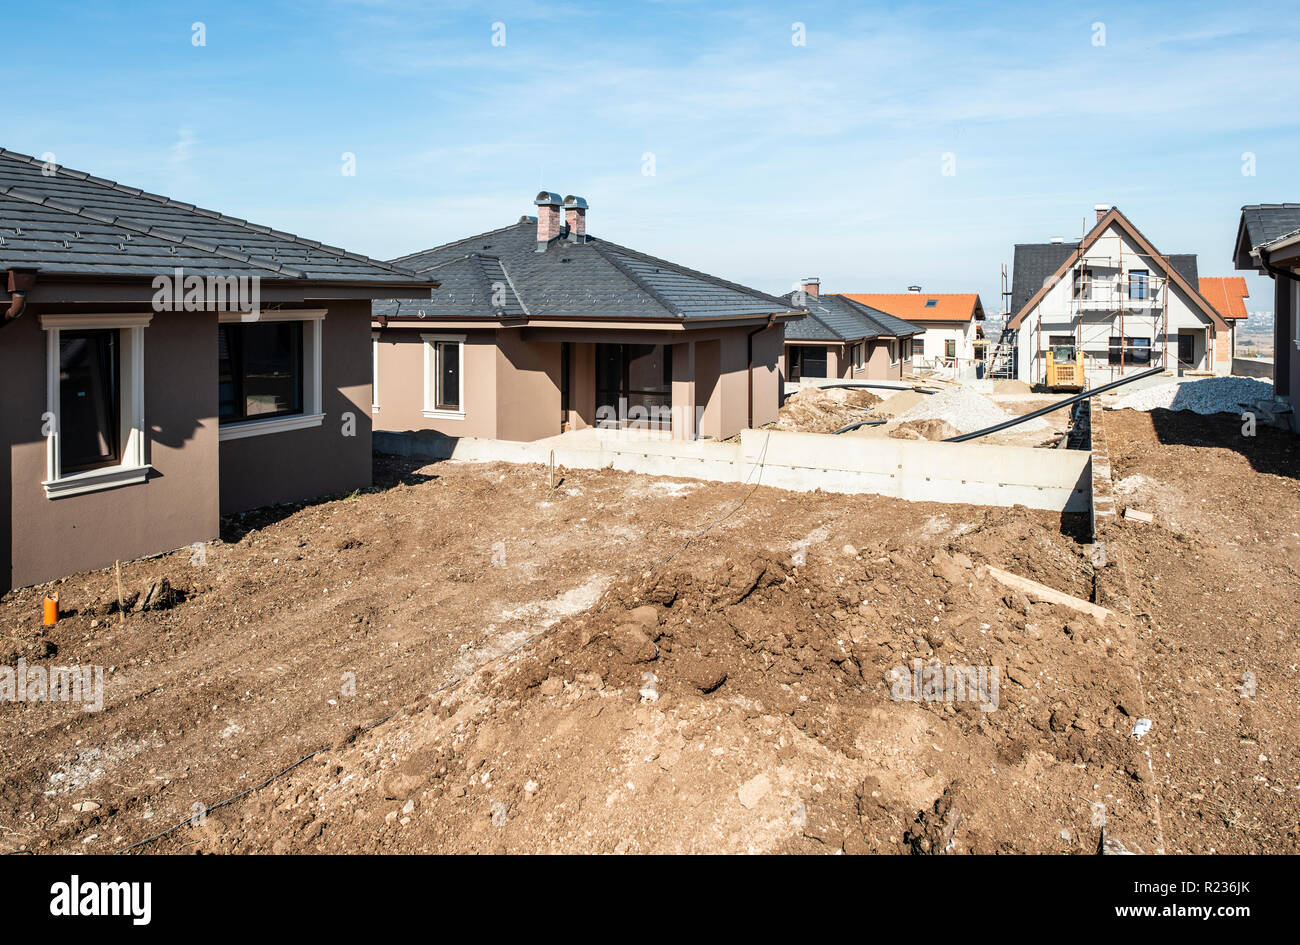 New Build Houses Sunny Day Construction Site Stock Photo Alamy